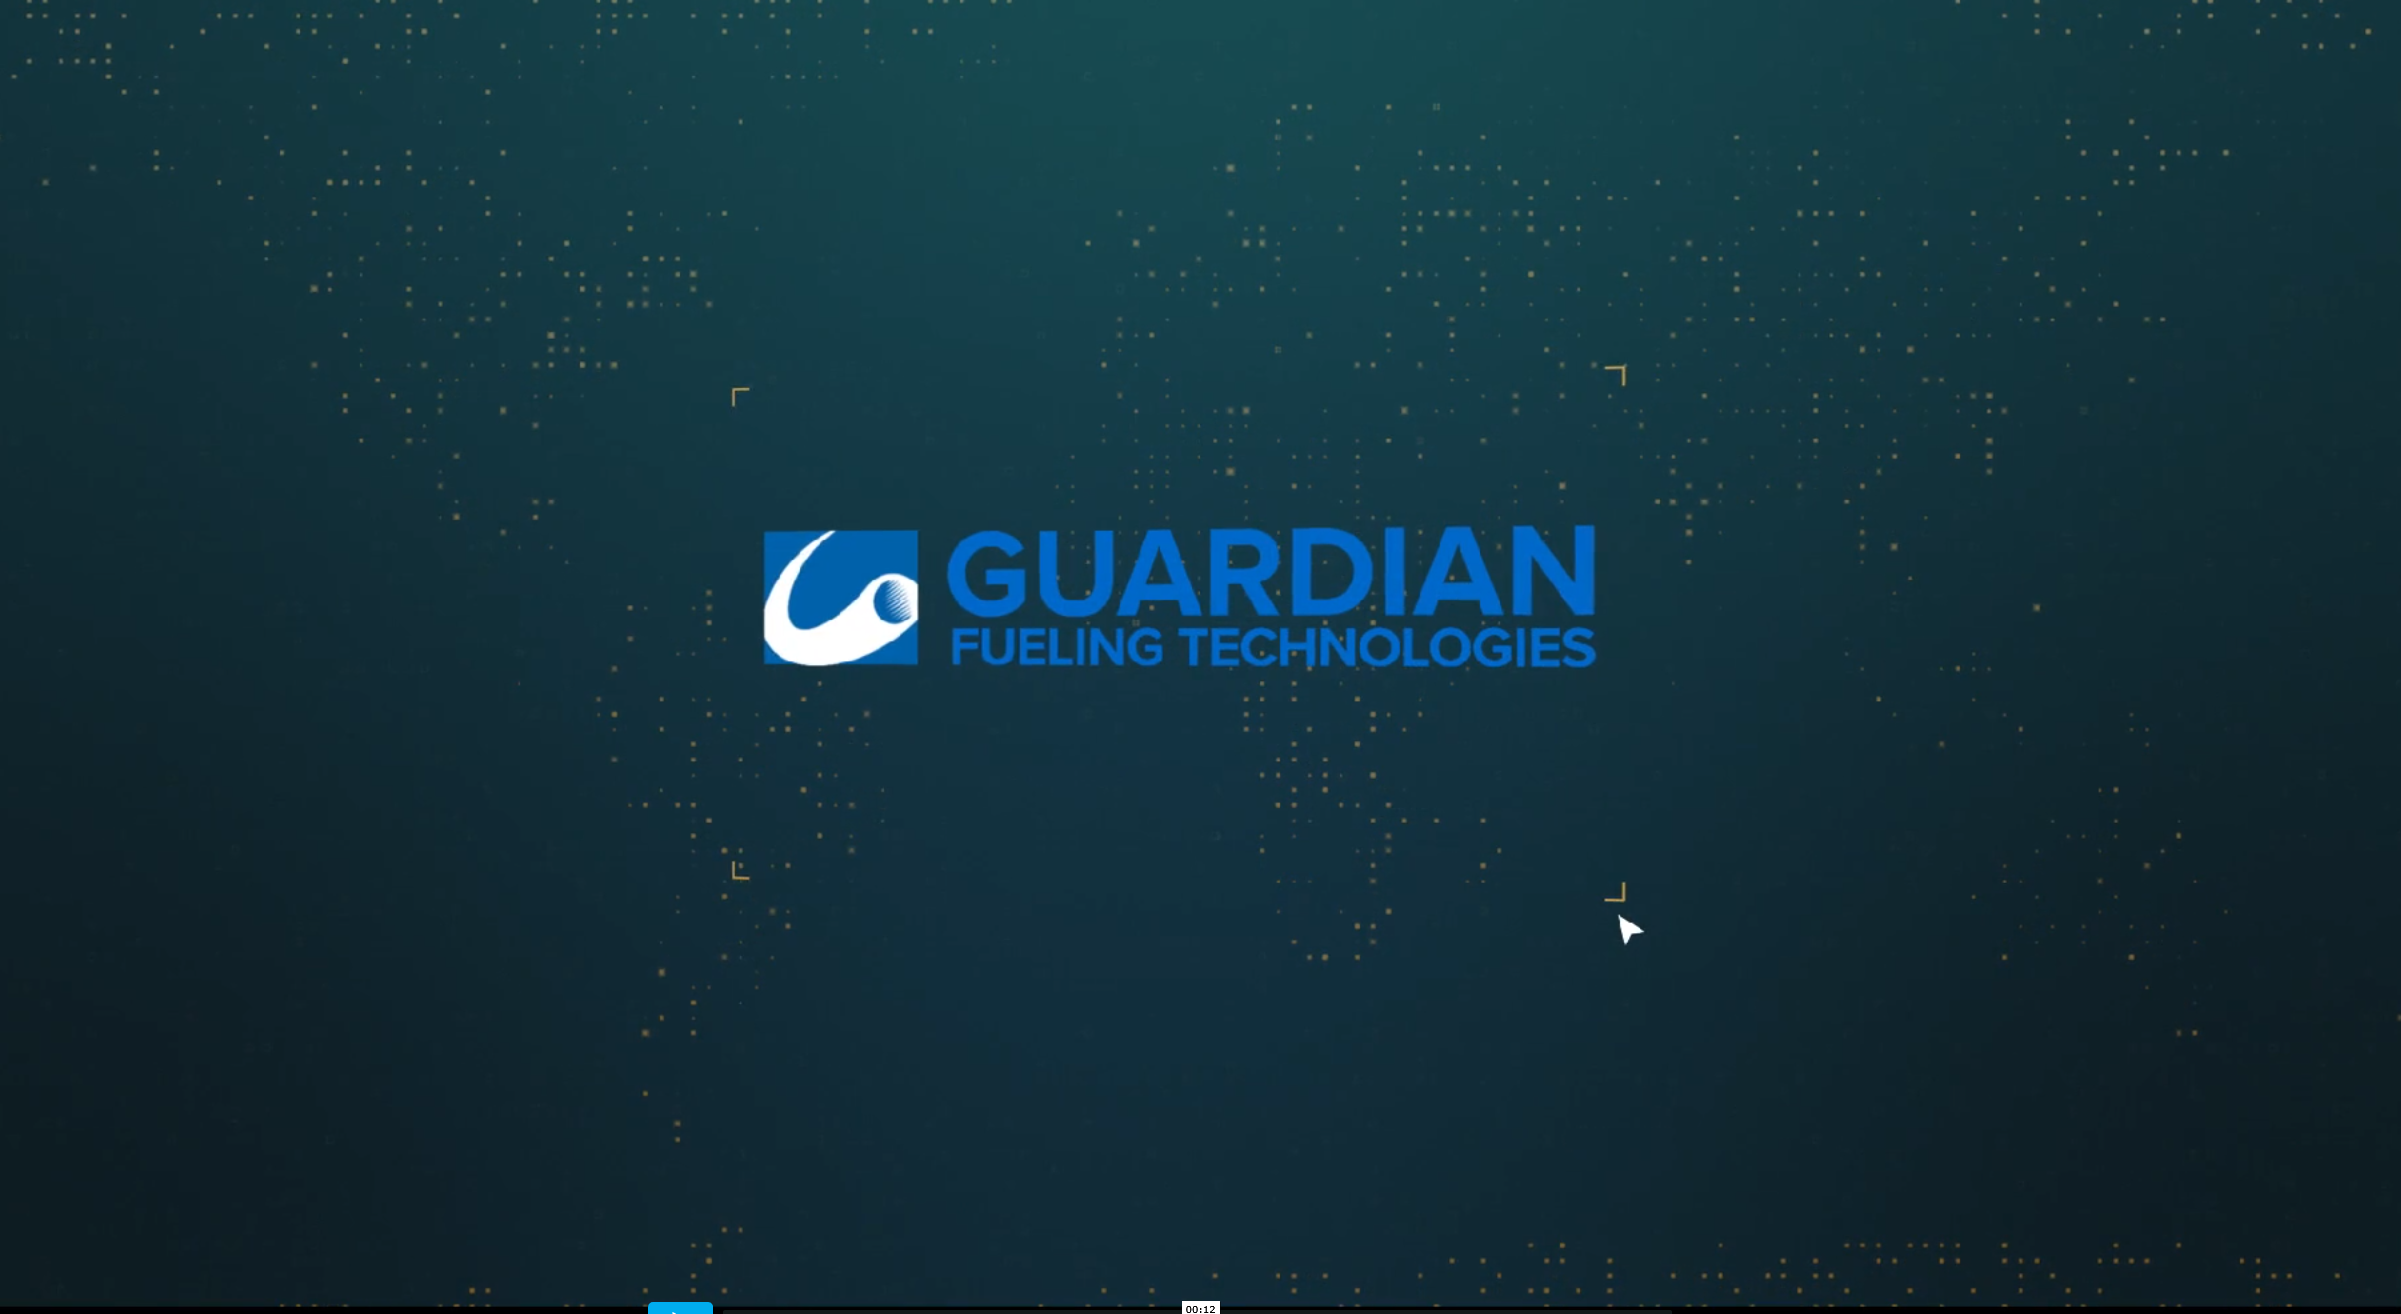 Guardian-Fueling Technologies